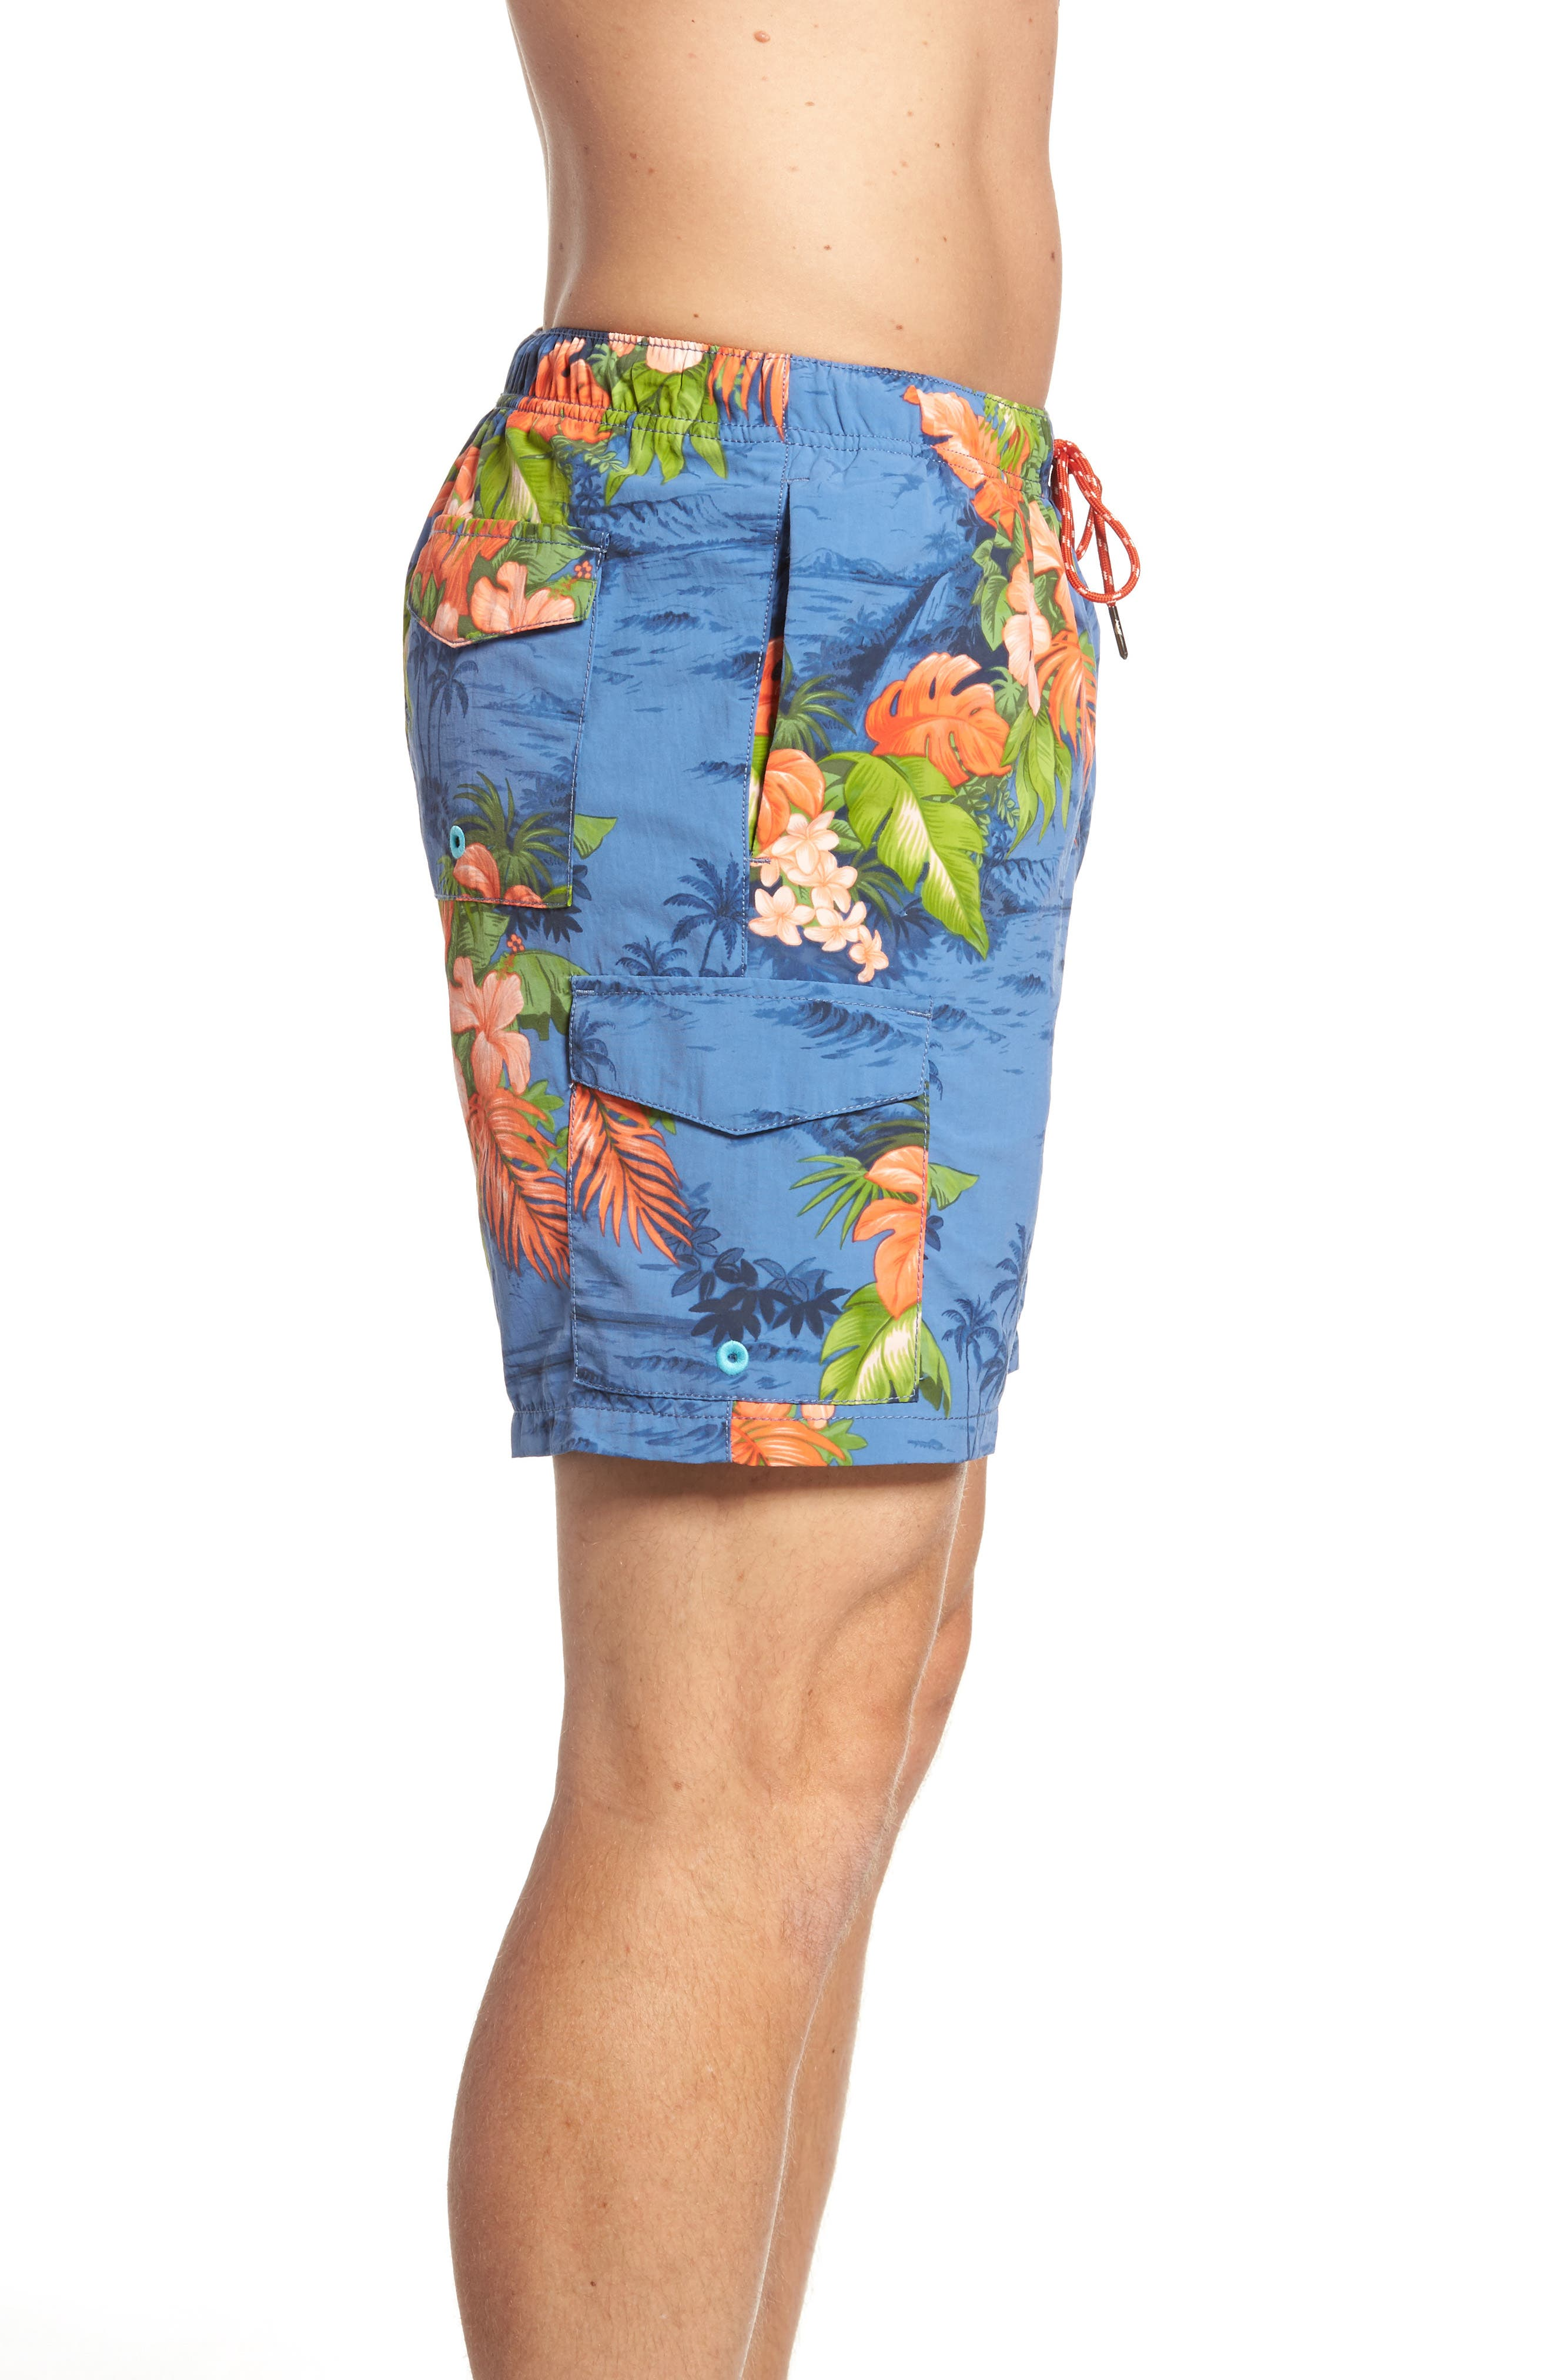 Naples Fiji Ferns Swim Trunks,                             Alternate thumbnail 4, color,                             400